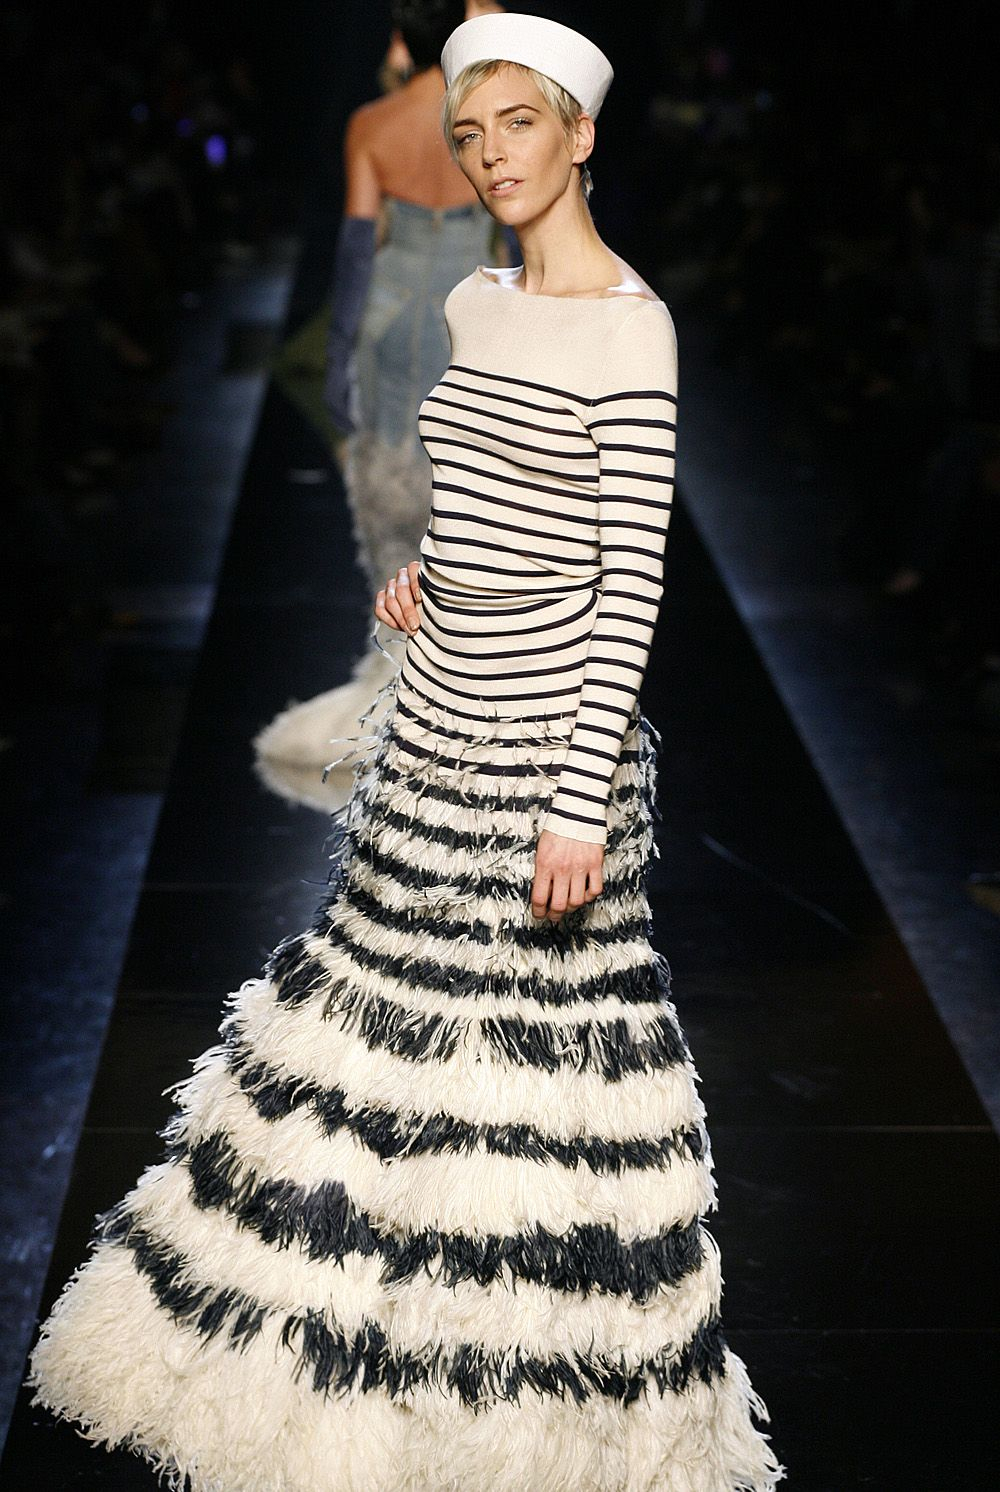 The Fashion World of Jean Paul Gaultier Has